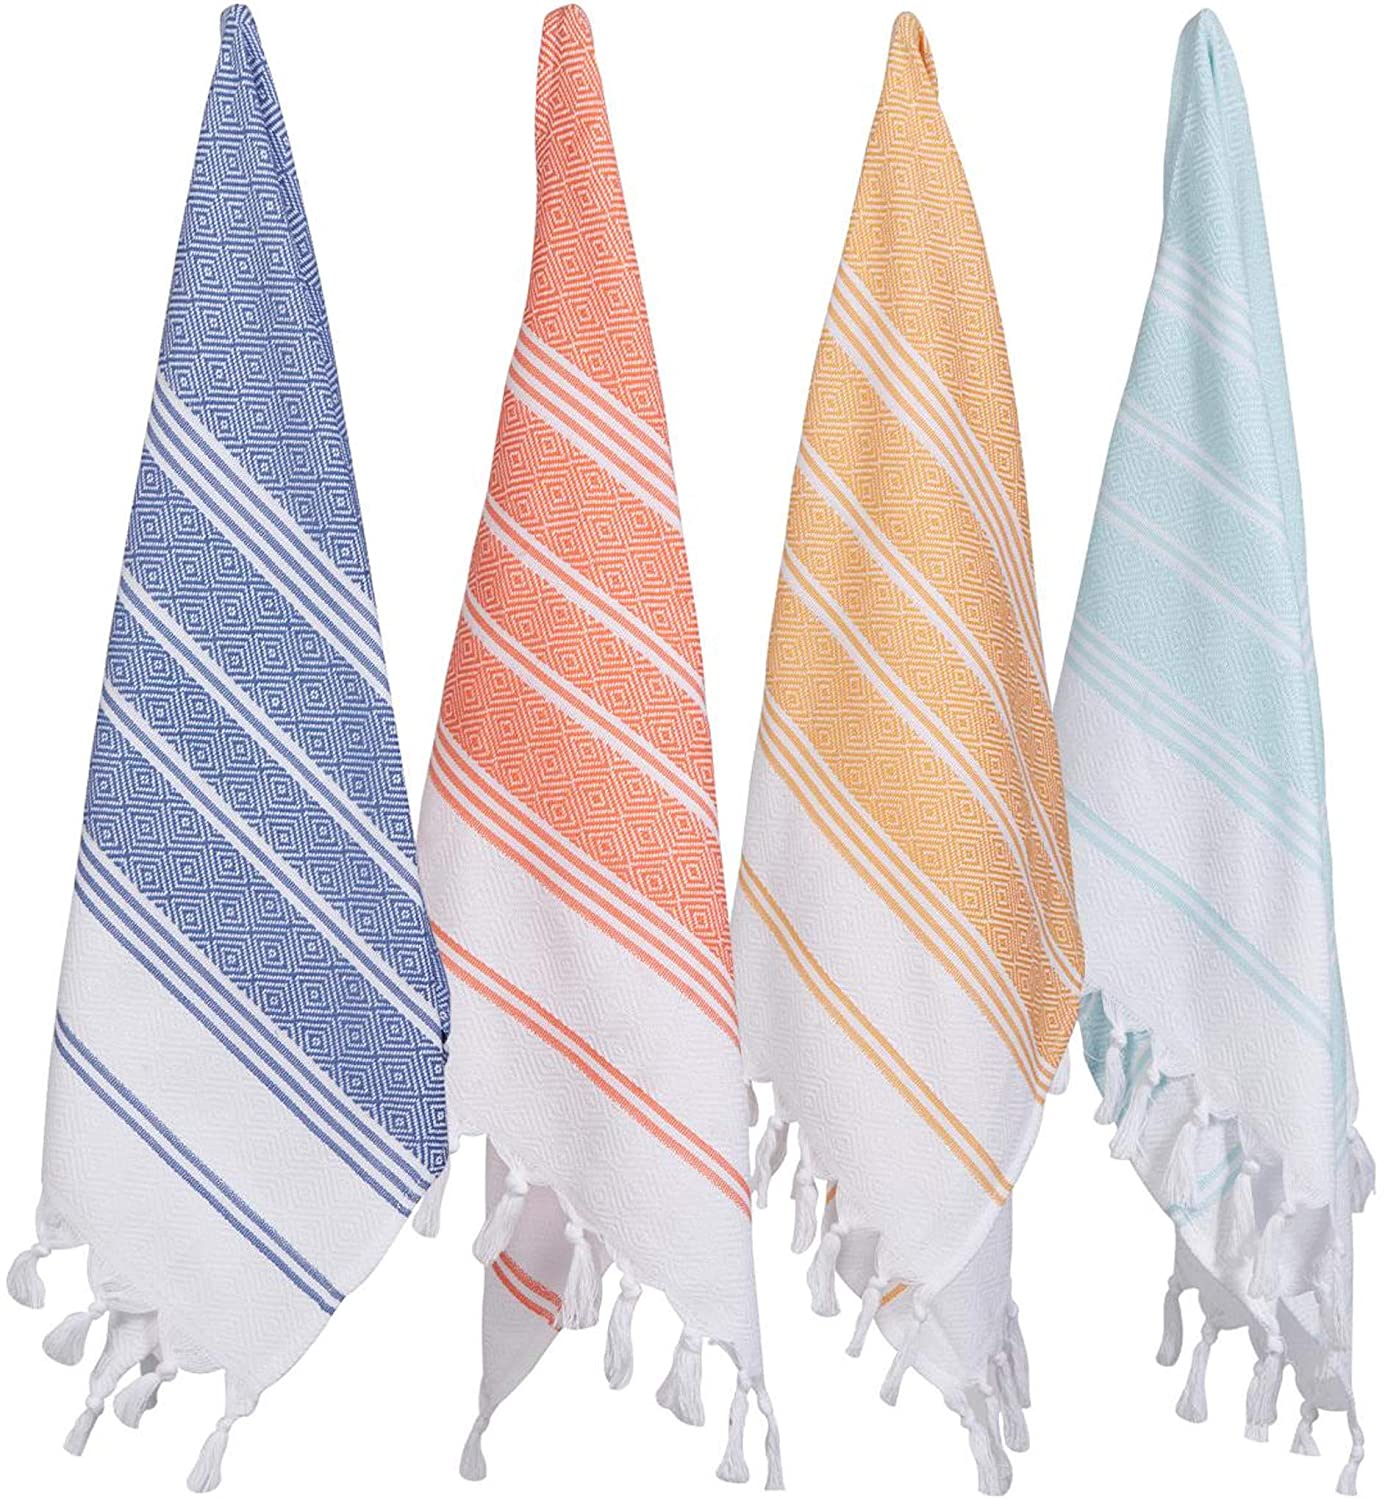 Bosphorus Turkish Cotton Gym Towel Set